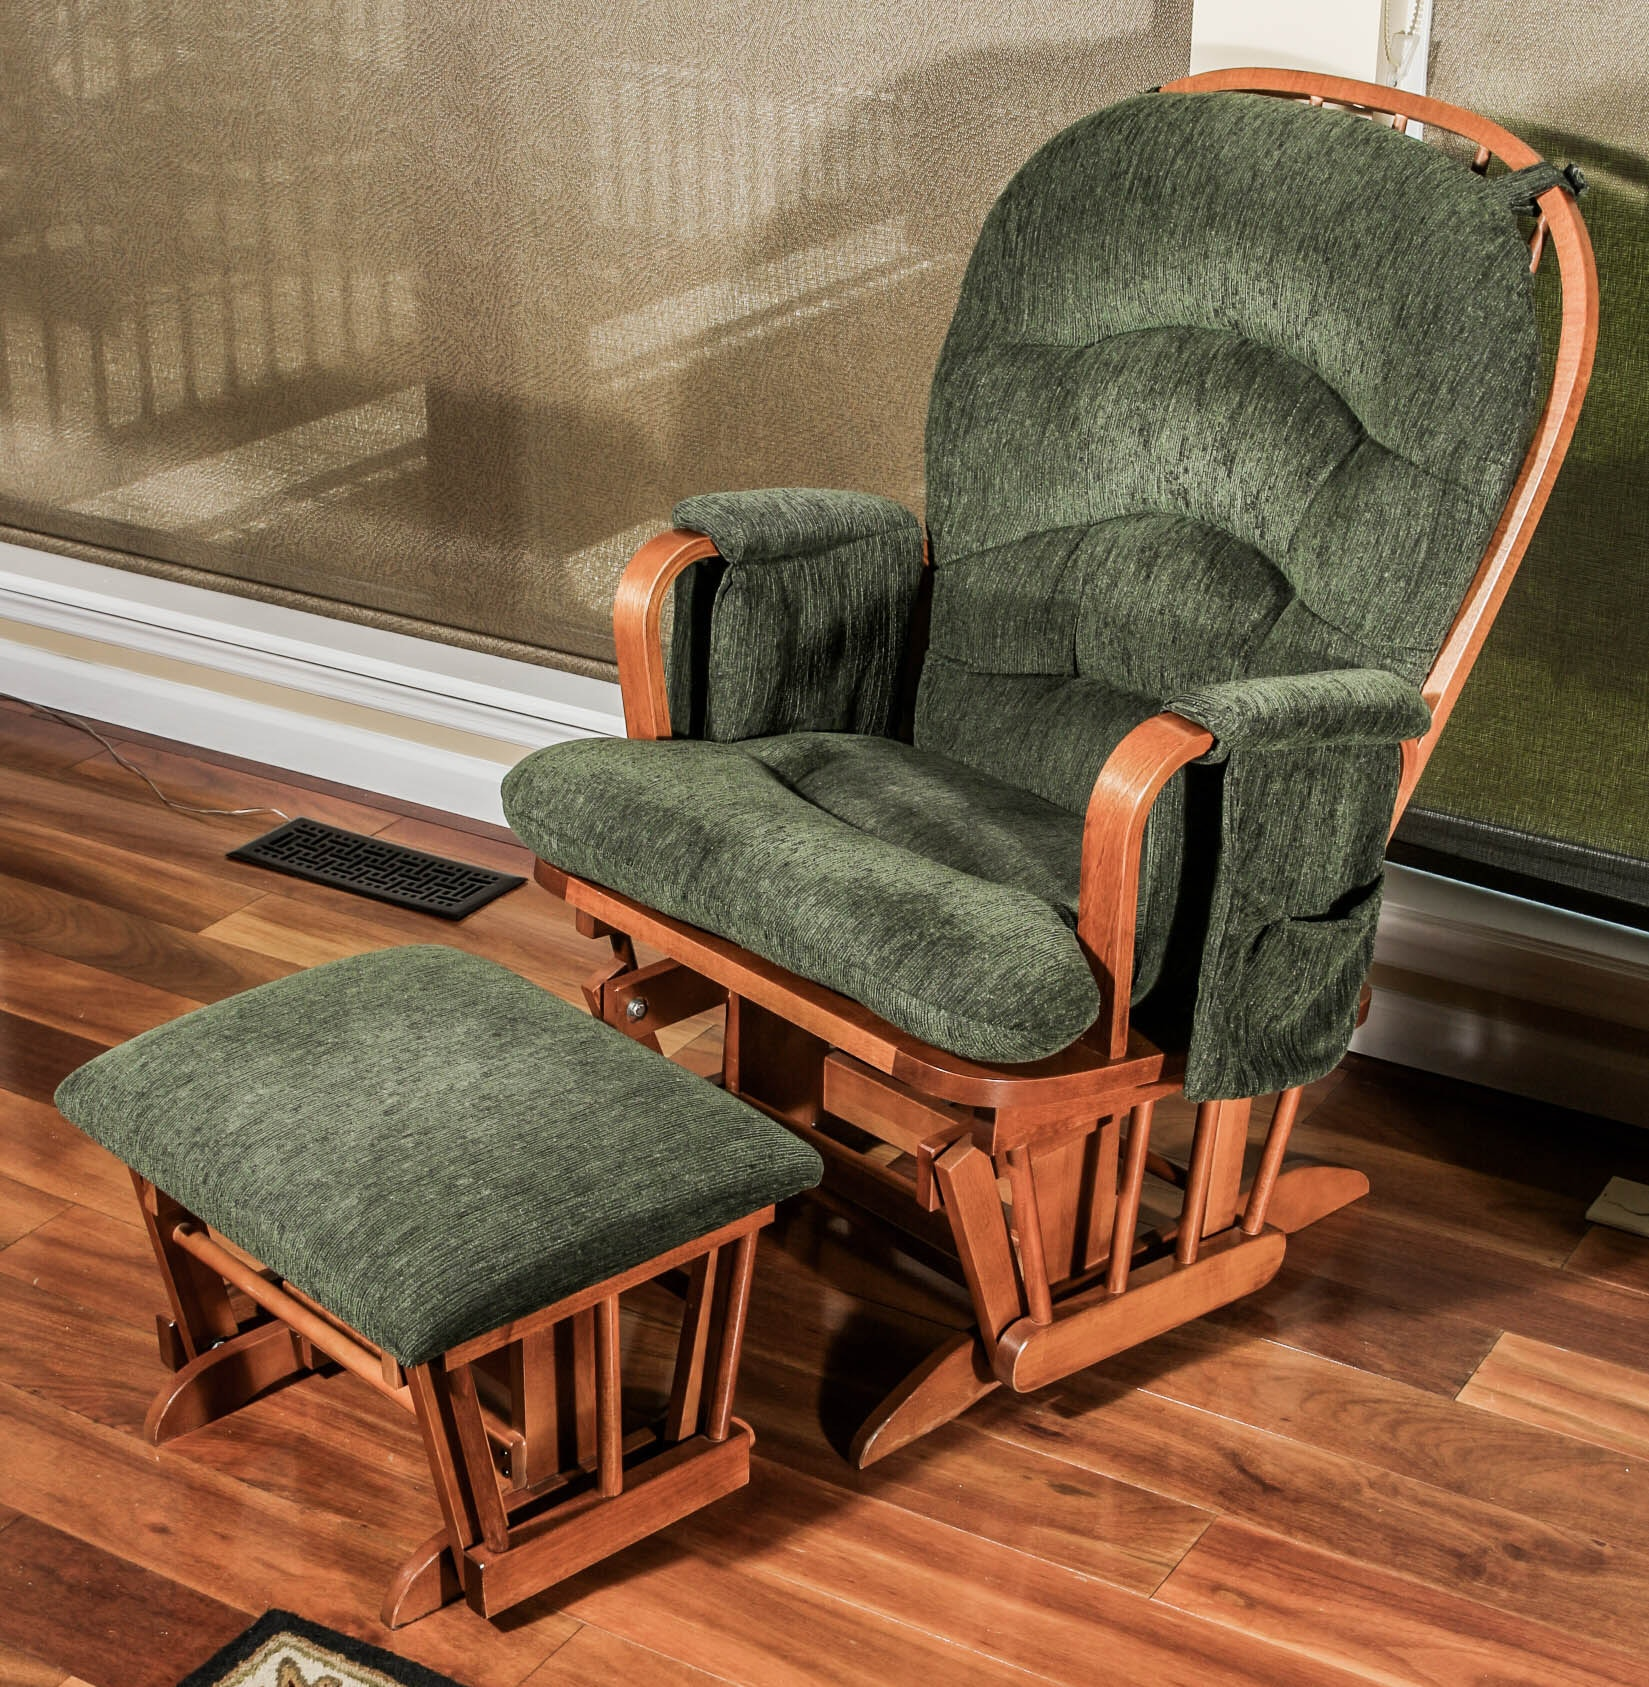 Glider Chair with Footrest